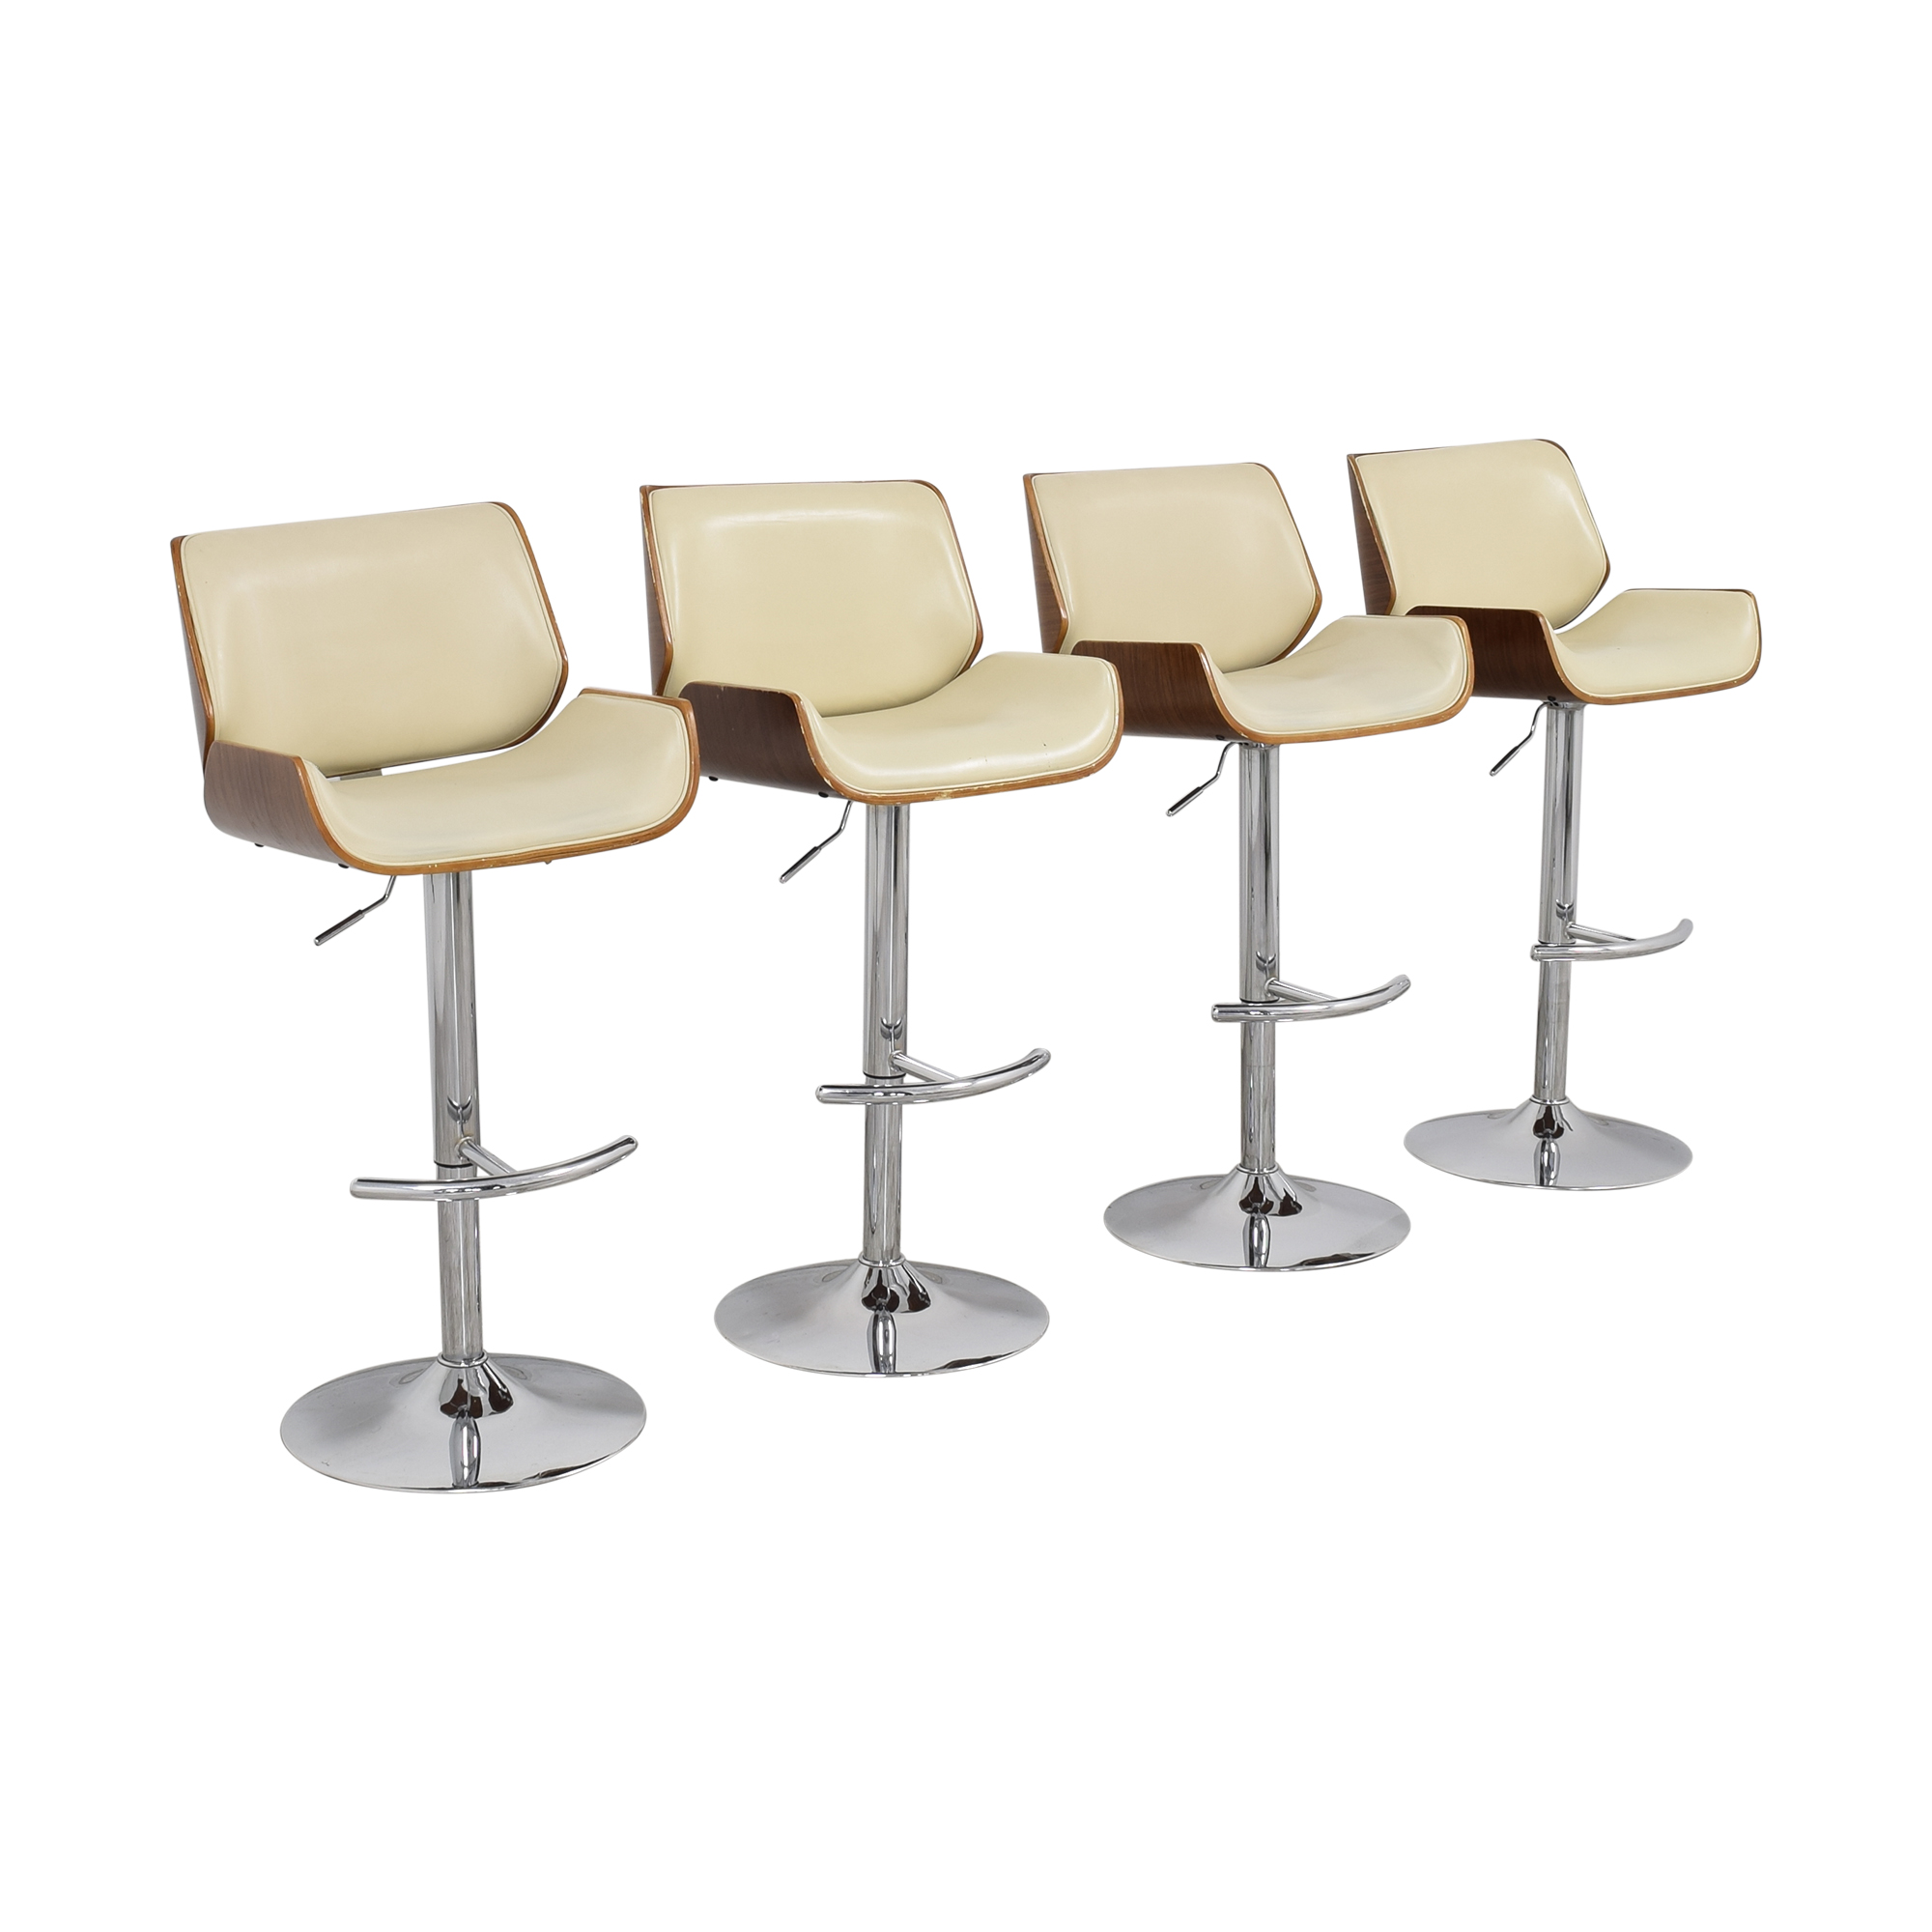 shop Mid Century Modern Swivel Adjustable Bar Stools  Chairs